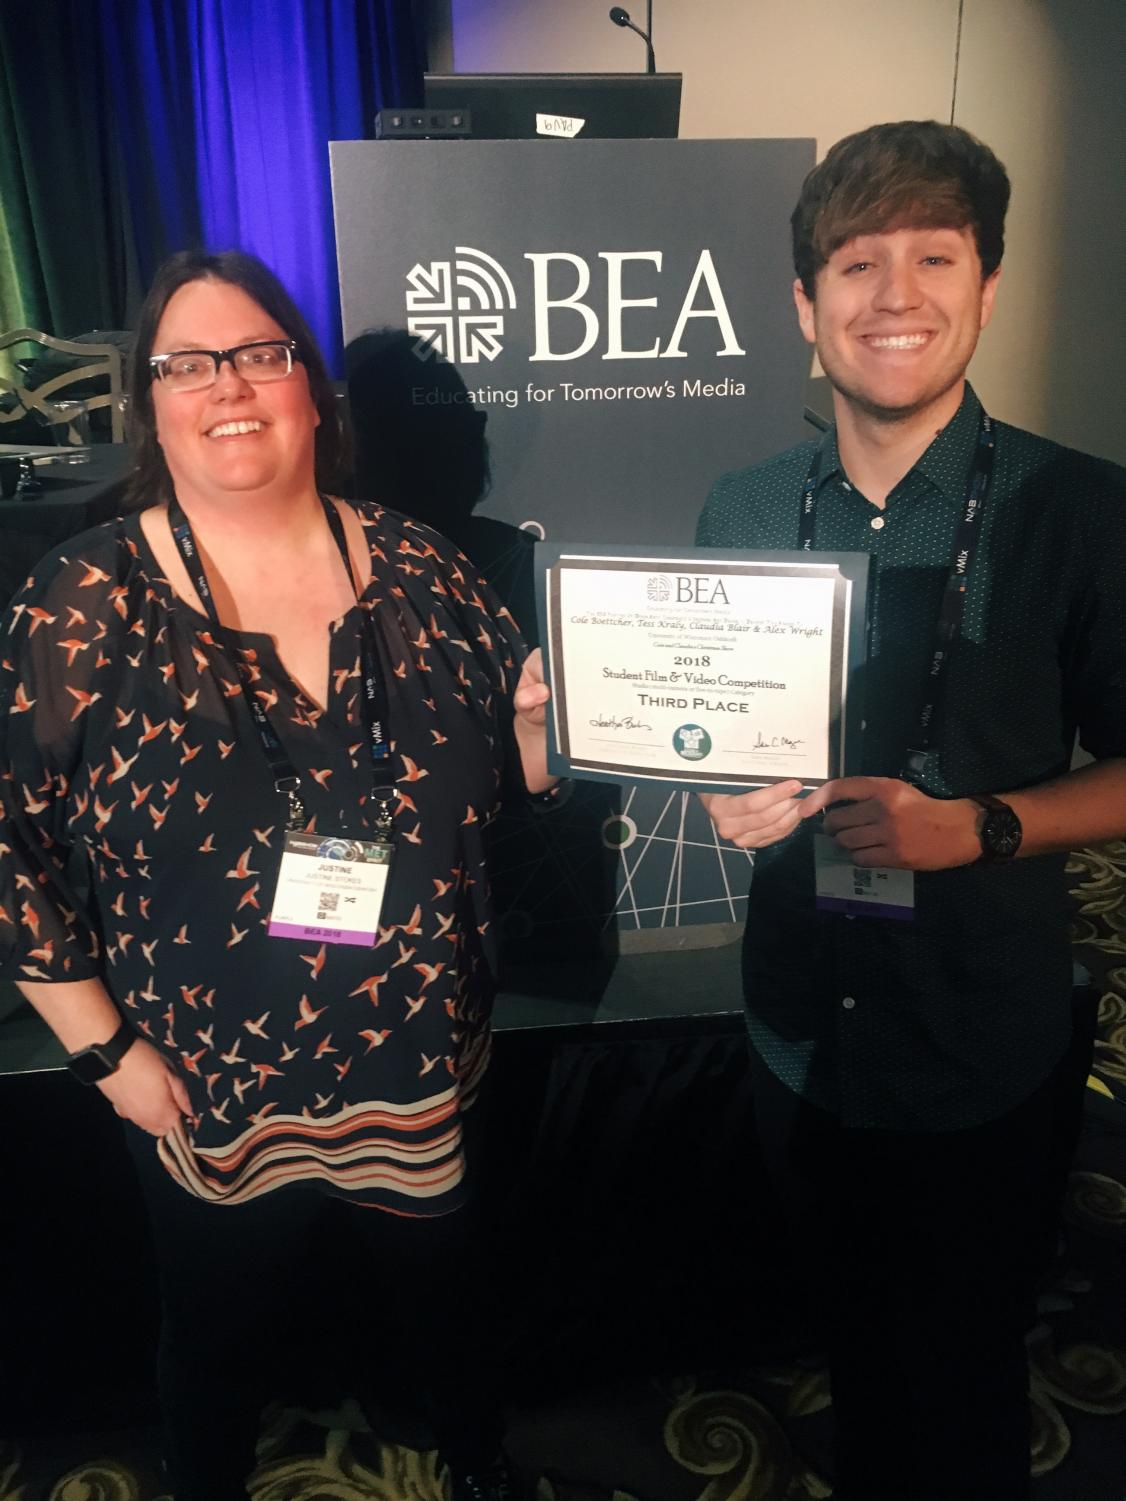 """Justine Stokes and Cole Boettcher show the third place award for """"Cole and Claudia's Christmas Show"""" at Brodcast Education Association's  festival in Las Vegas on Monday."""